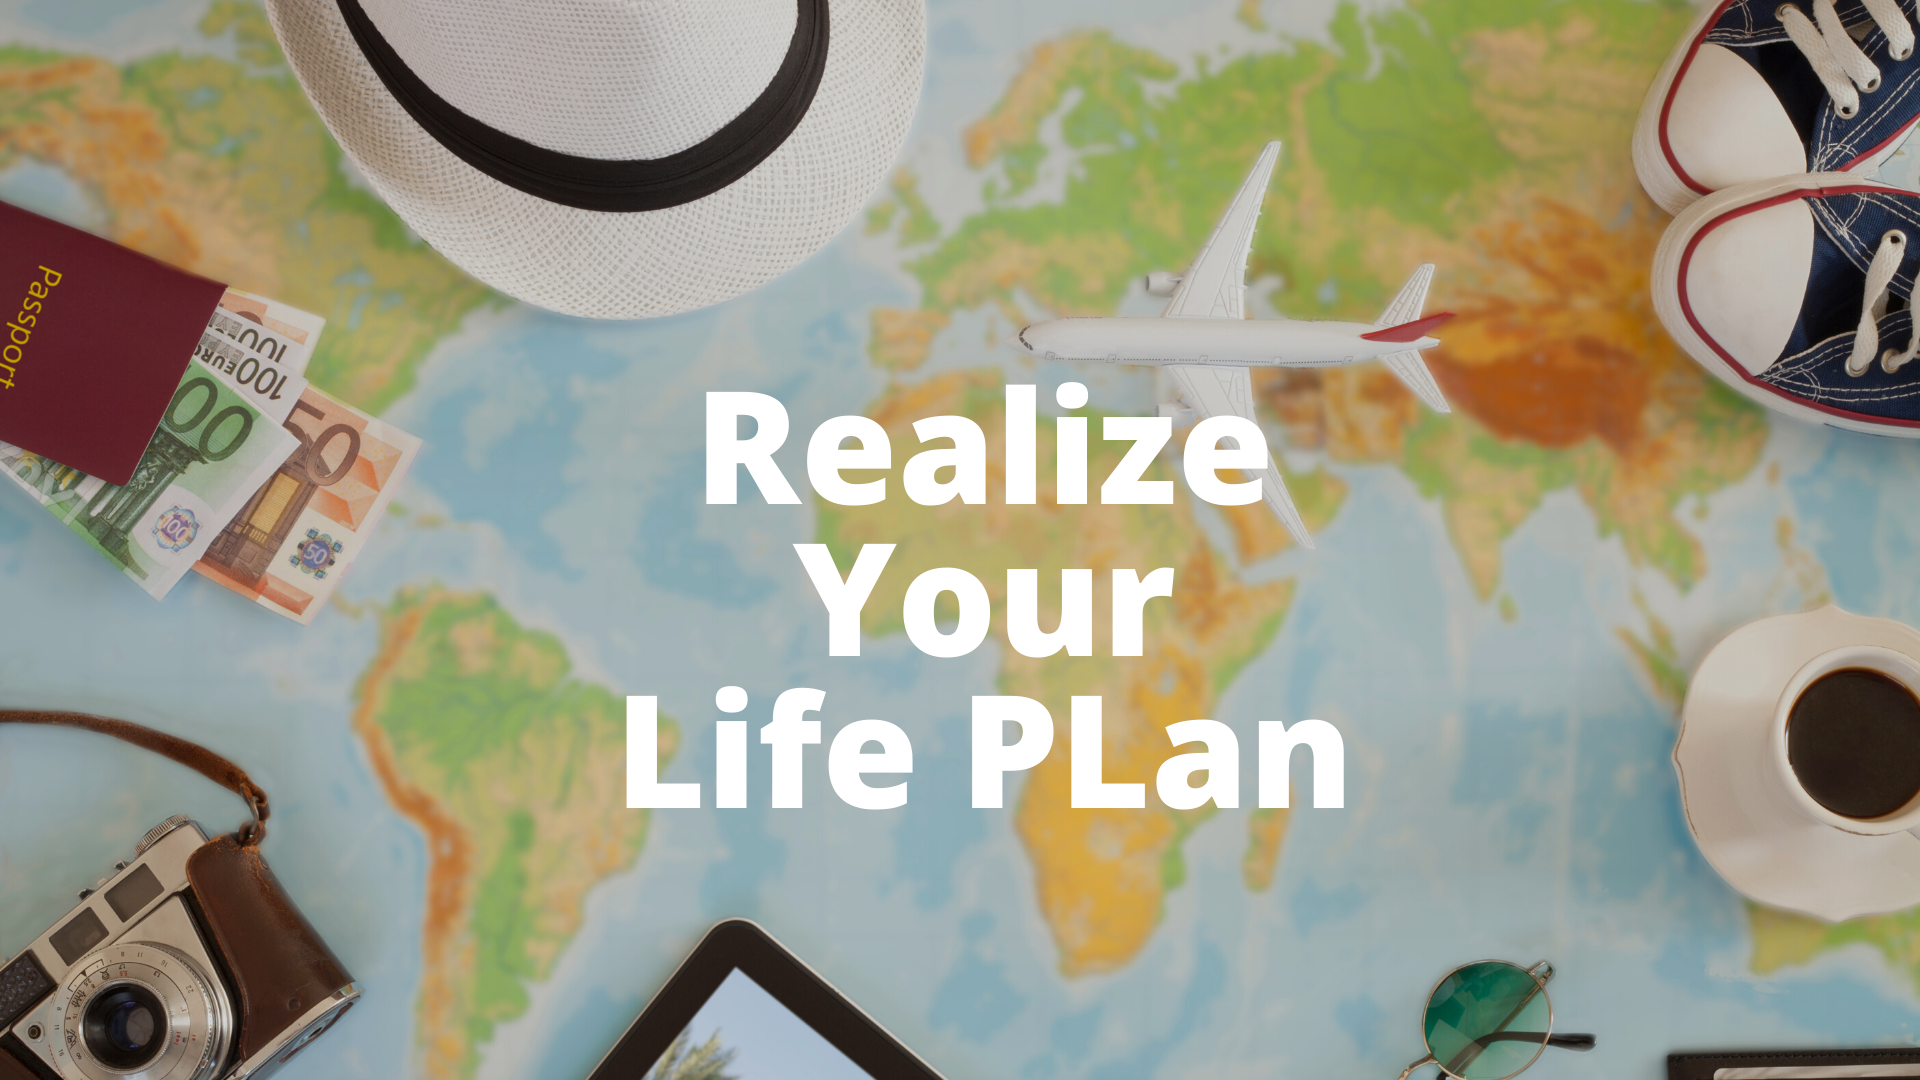 Financial Planning is About Making Your Life Plan a Reality